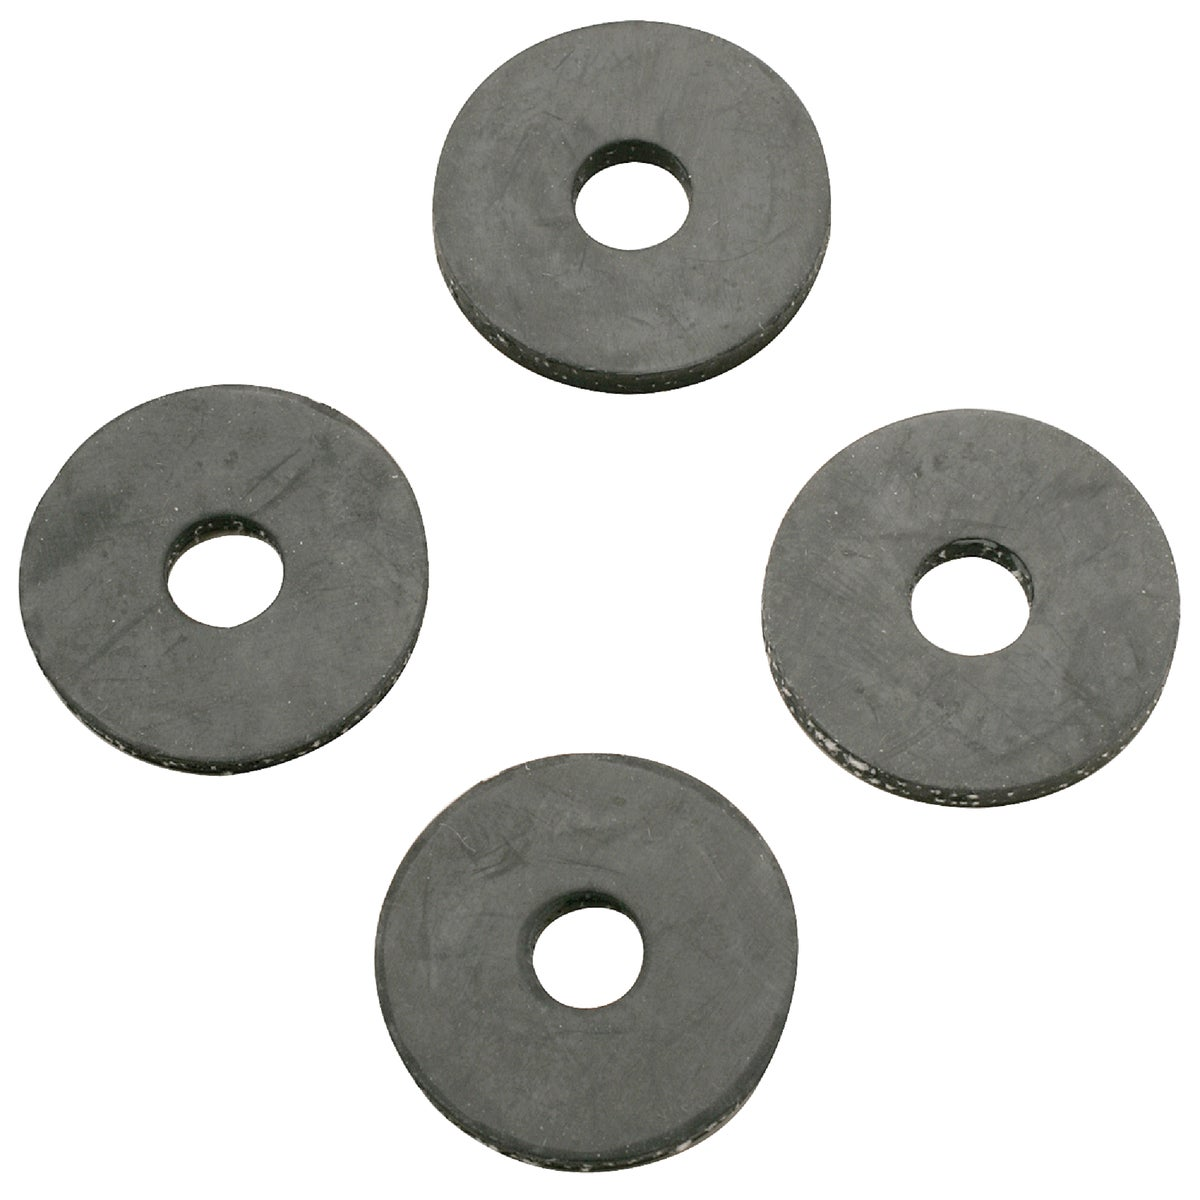 4PK TANK/BOWL WASHER